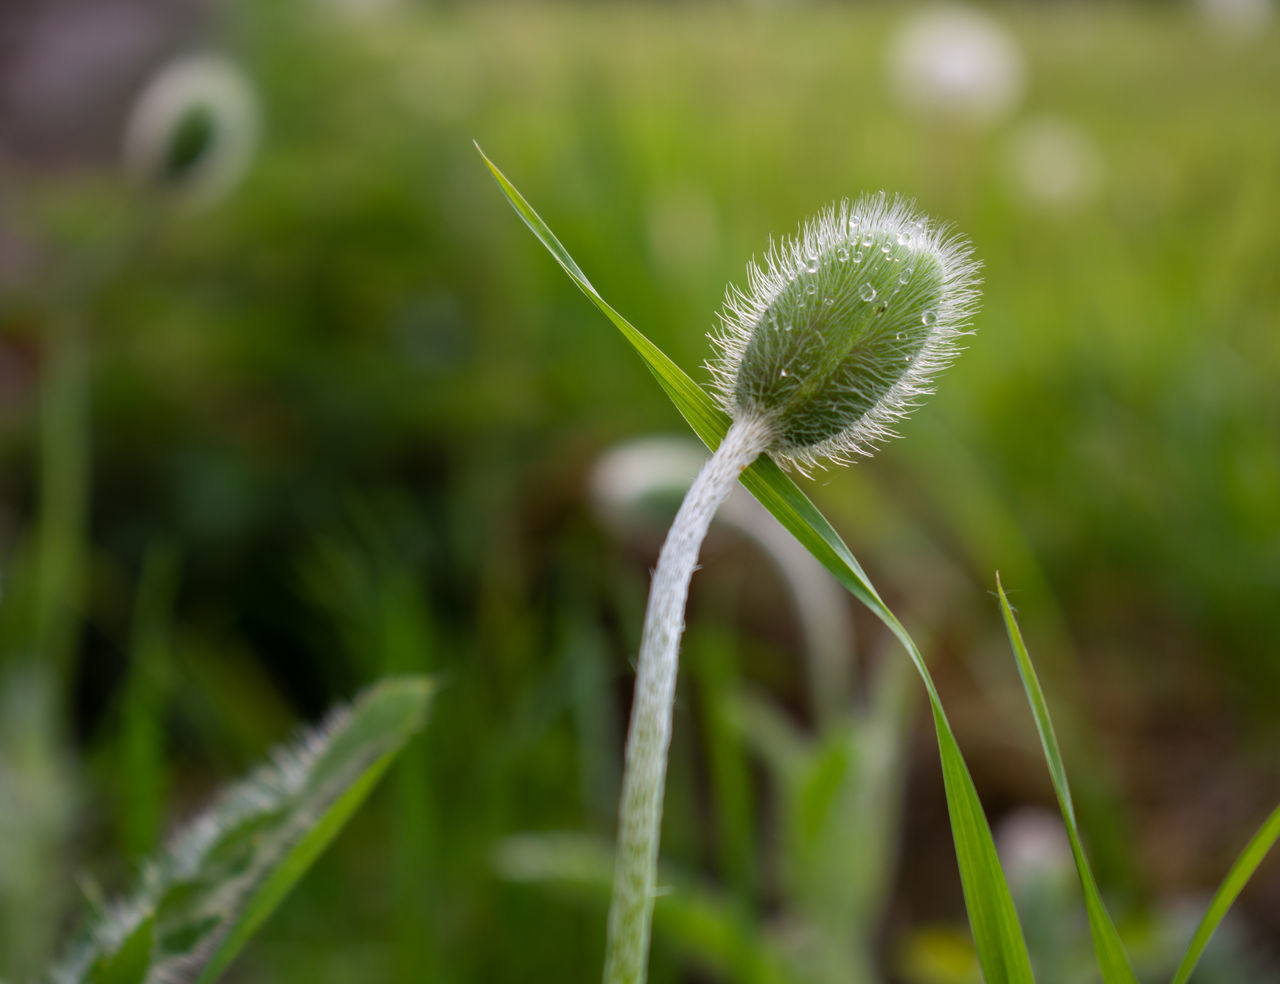 CLOSE-UP OF DANDELION IN GRASS